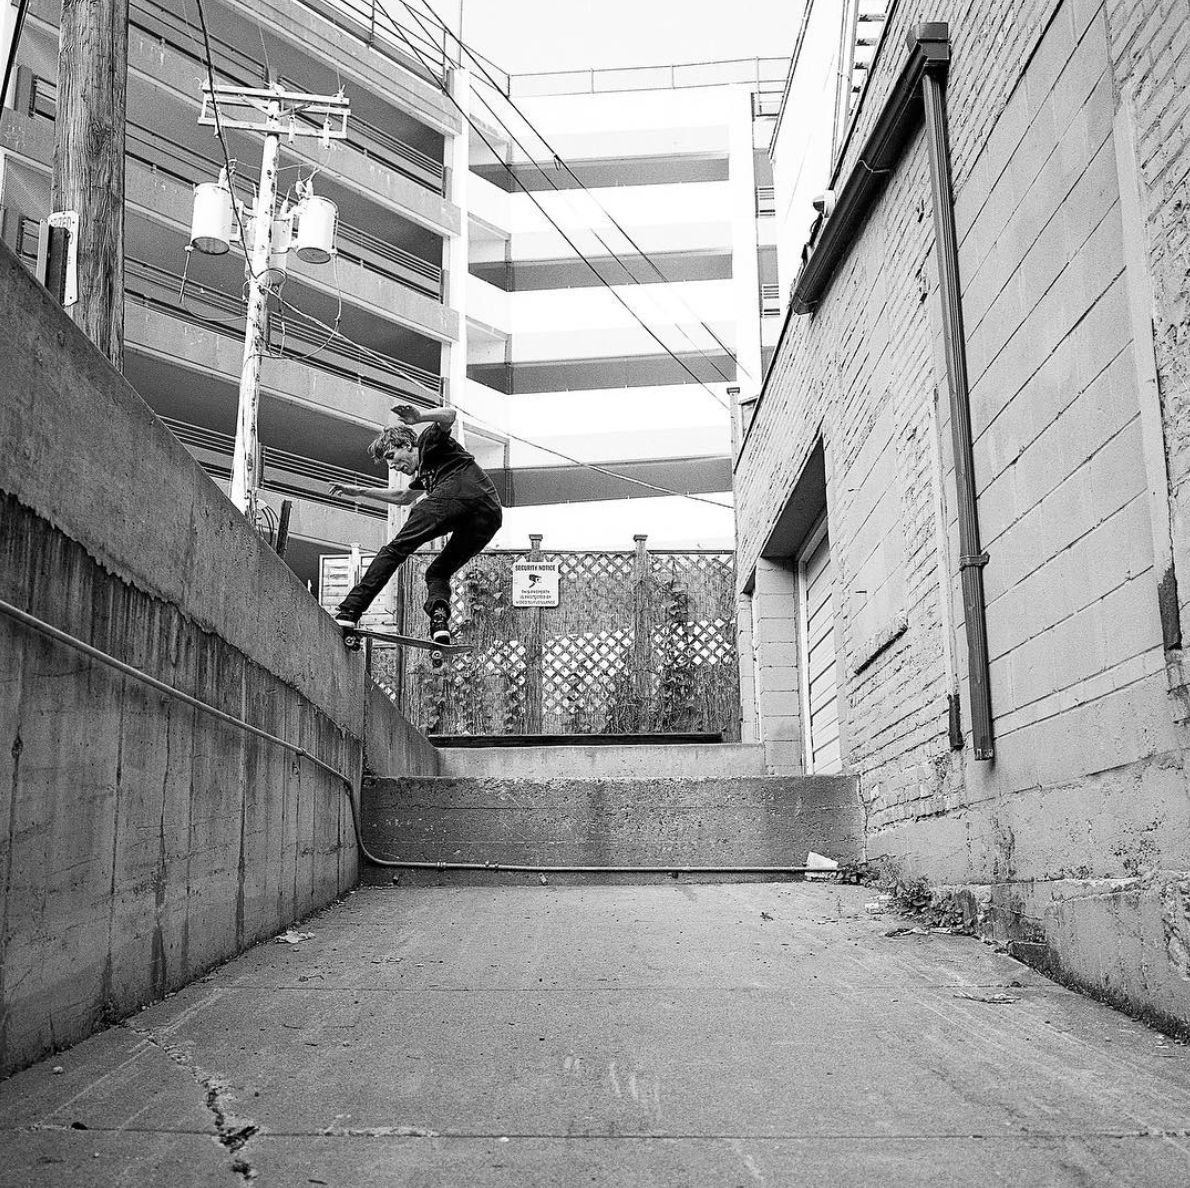 Yes, you're reading this correctly. Dom Randazzo has a part in this video. Frontside noseslide.